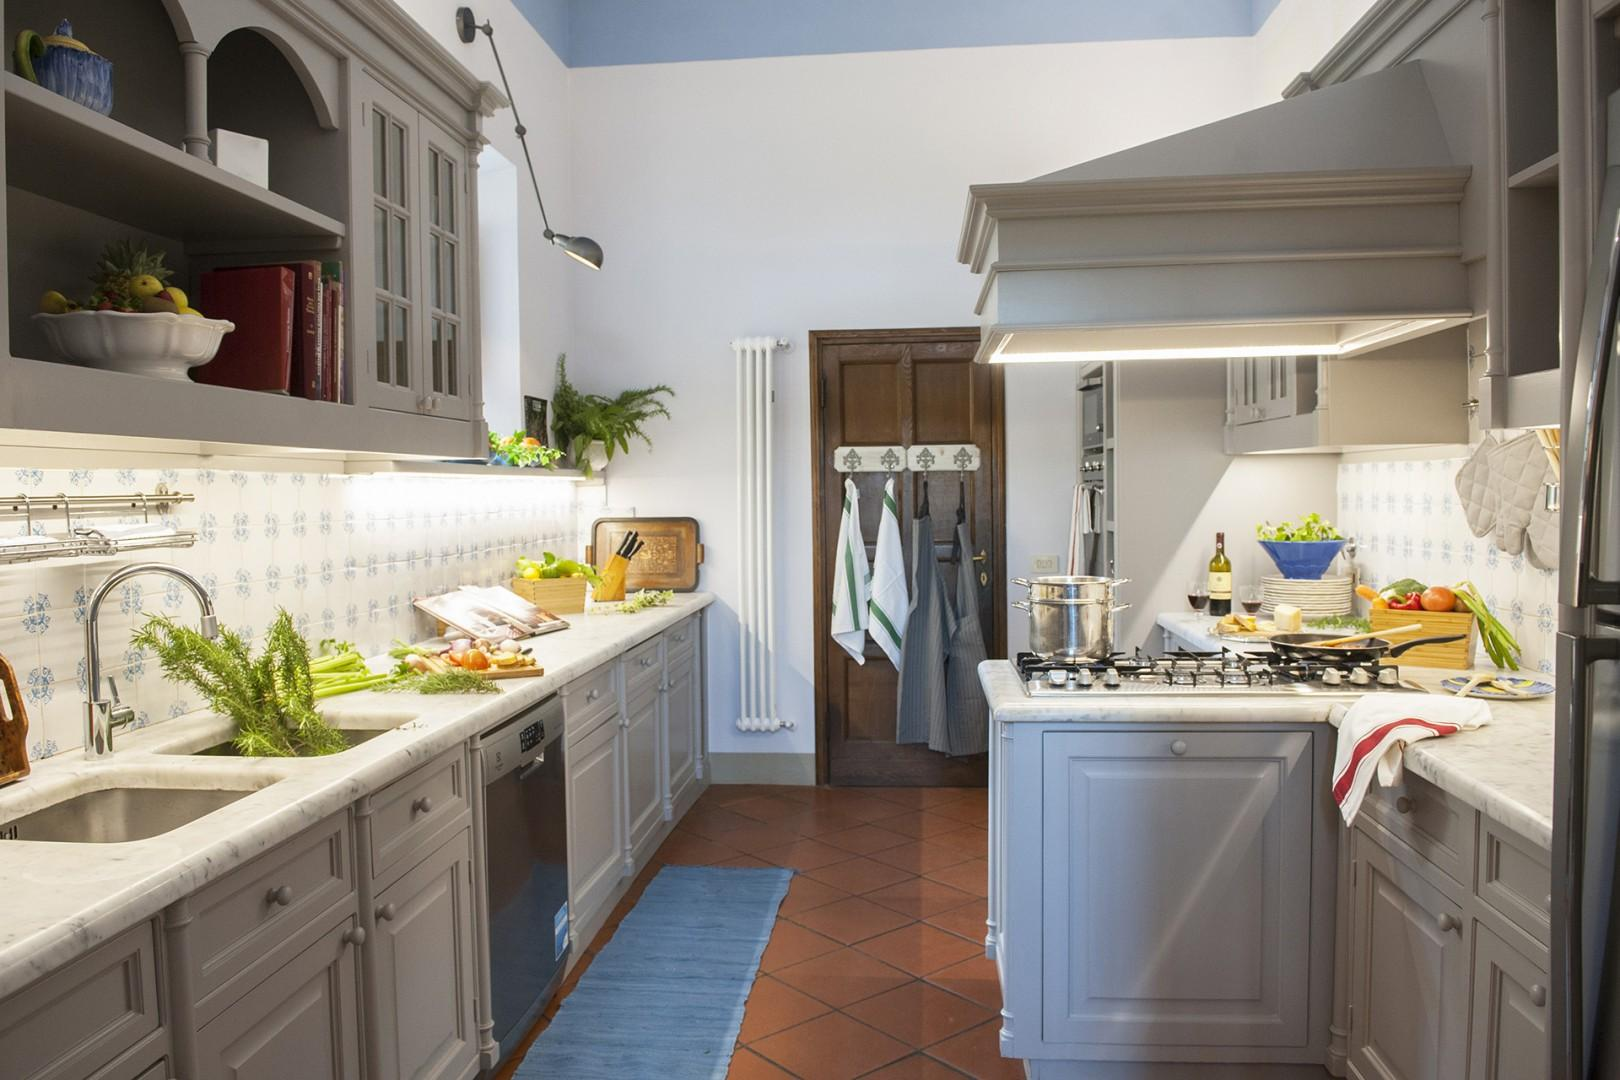 Top-of-the-line kitchen is fully appointed